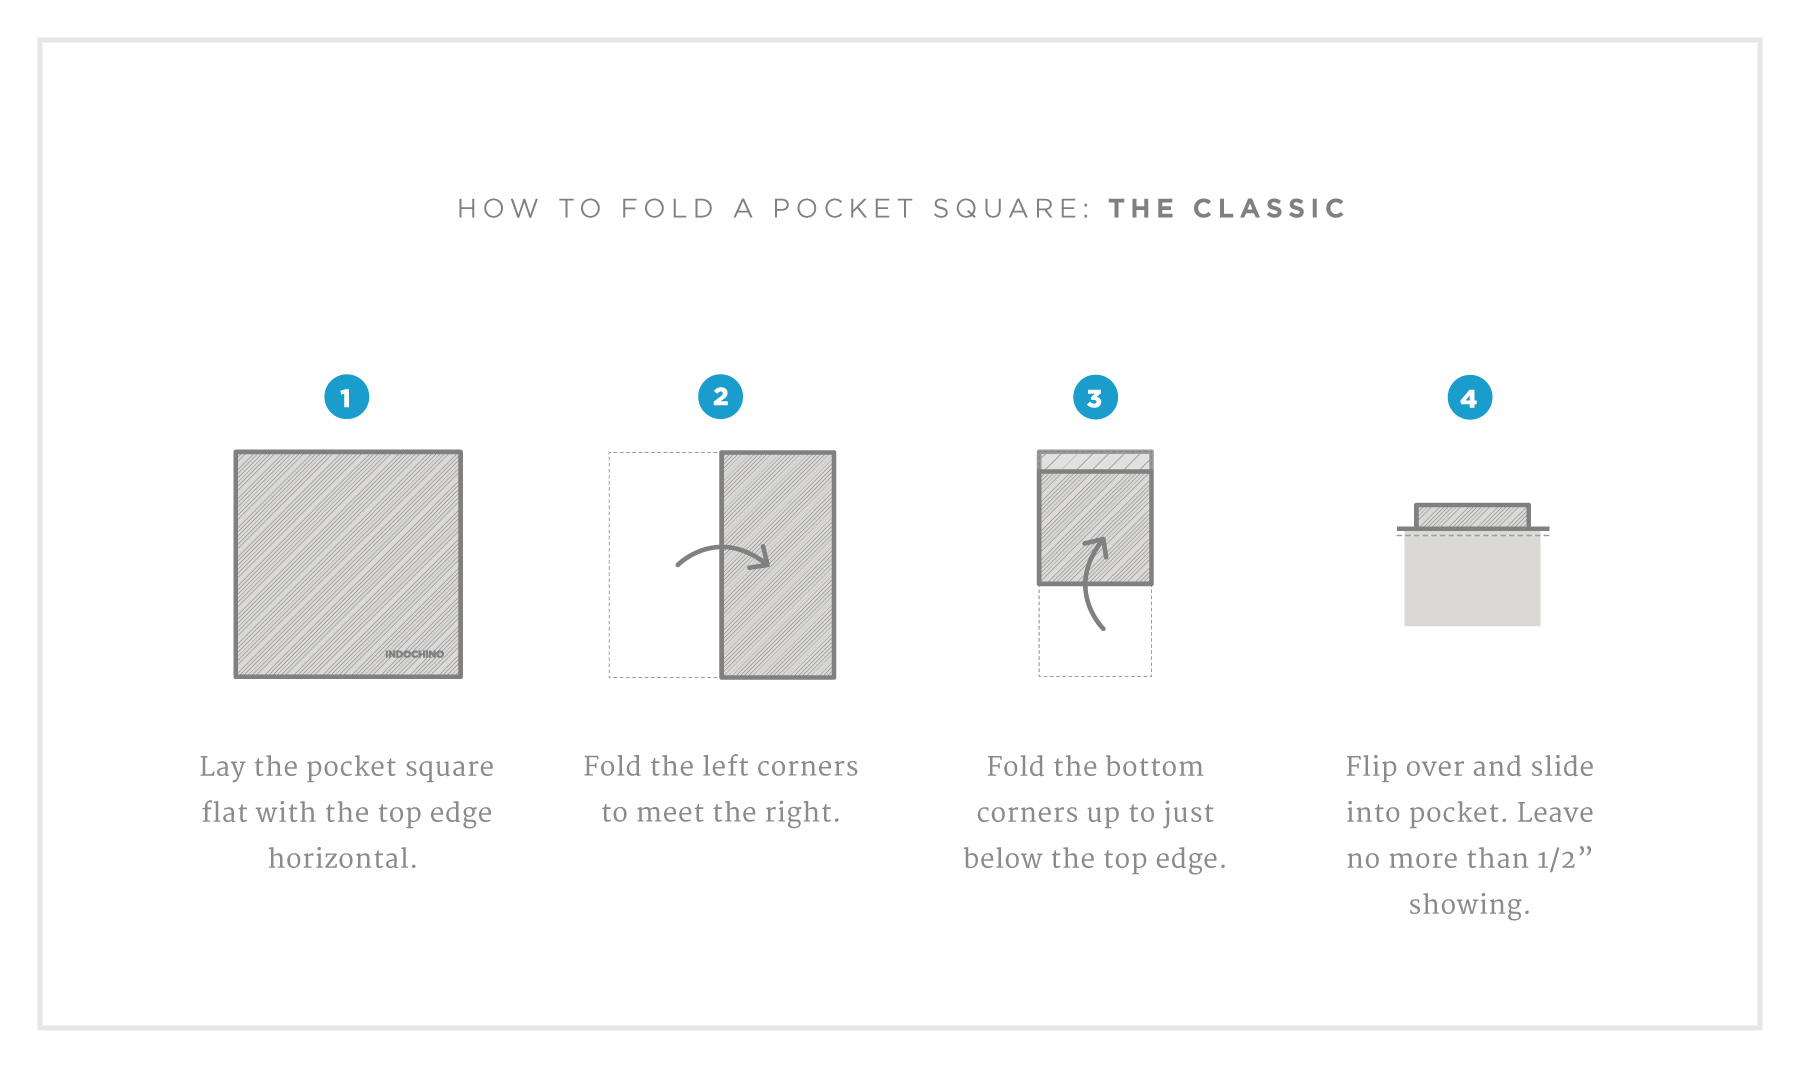 How to fold a Classic